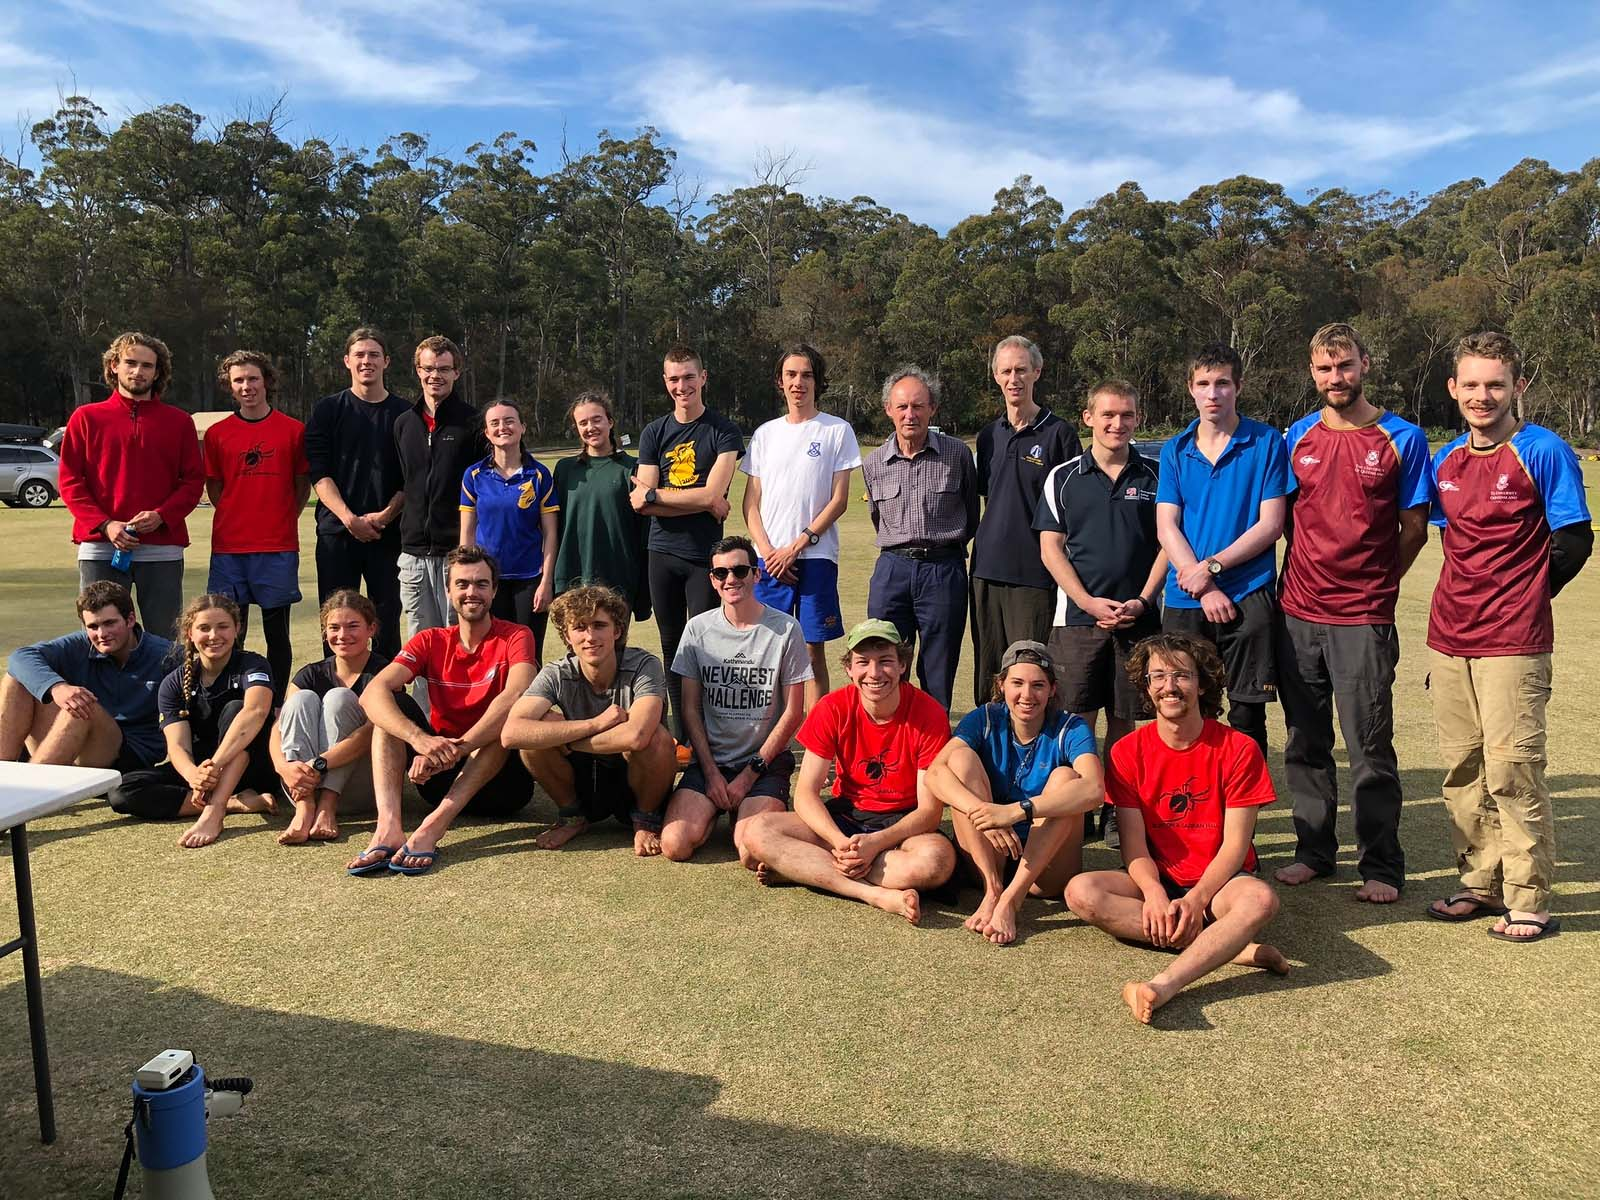 All Intervarsity competitors with Intervarsity founder David Hogg